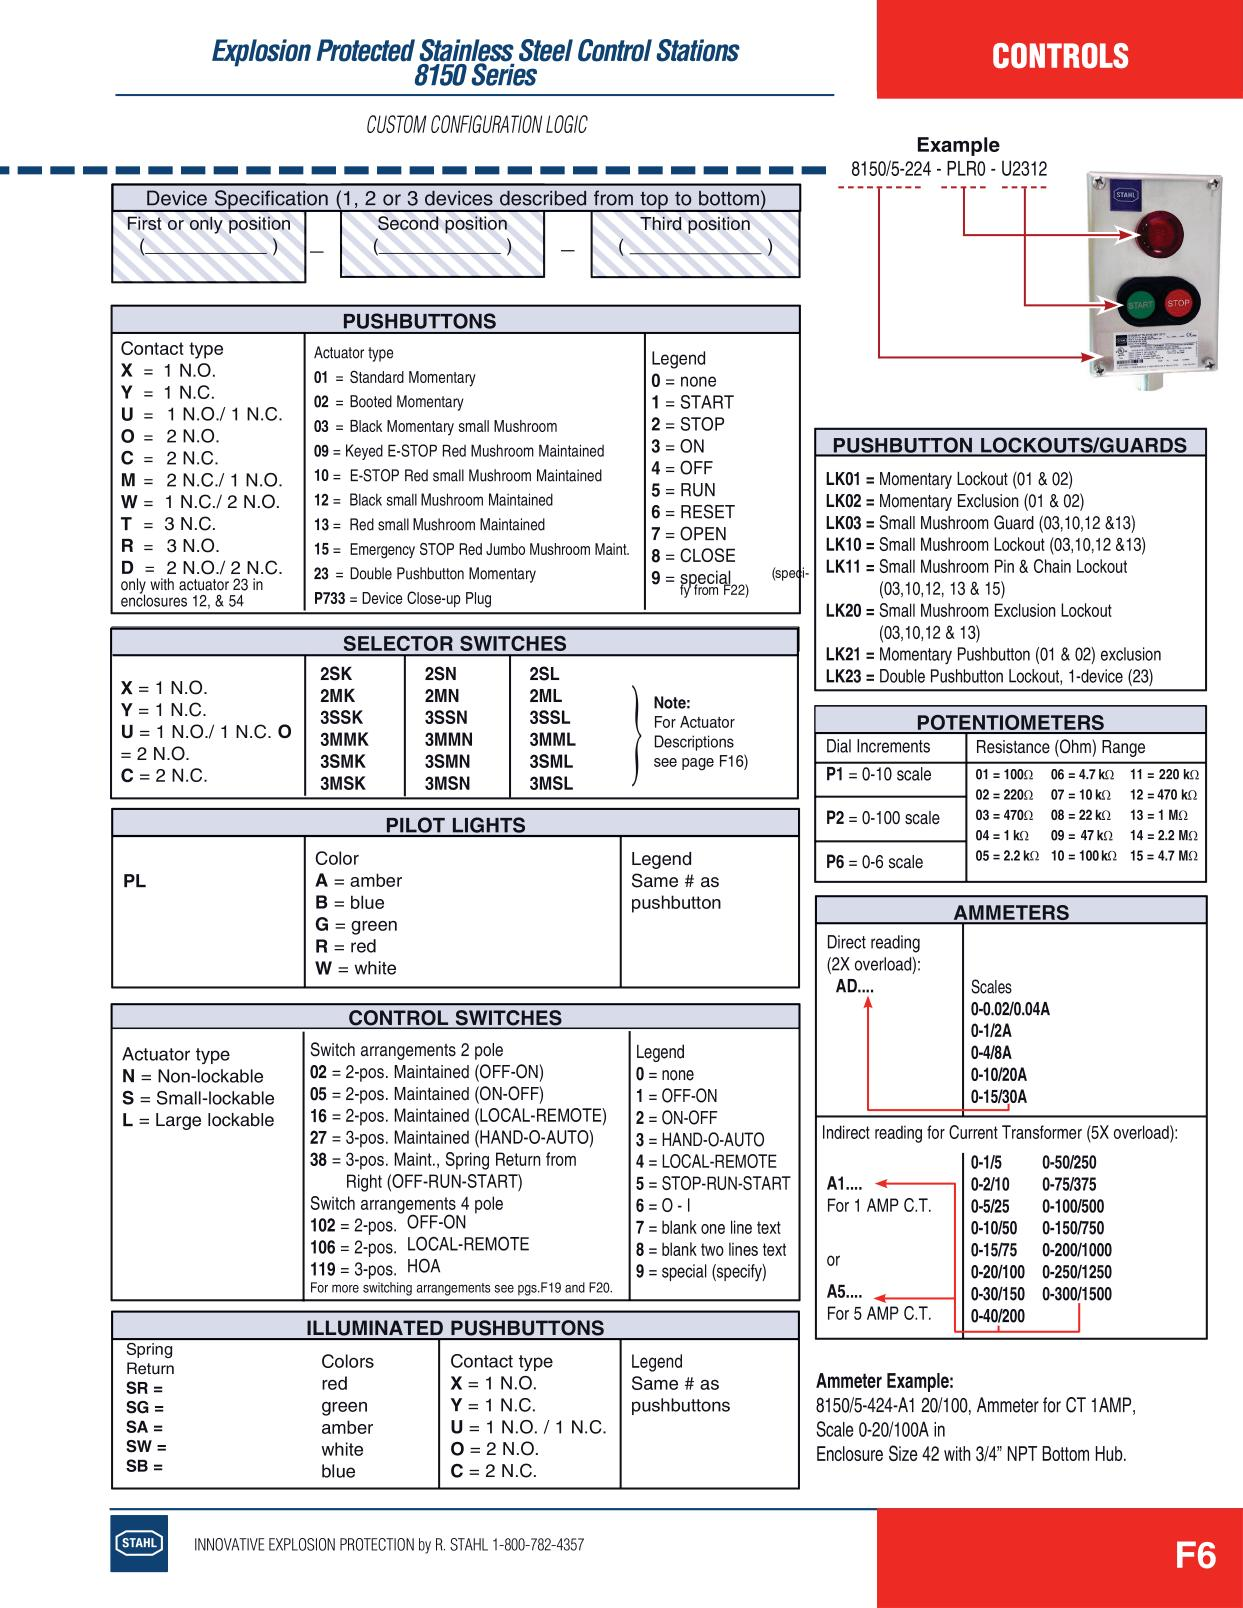 Control Stations - R Stahl Electrical Catalog 9016 Page F6